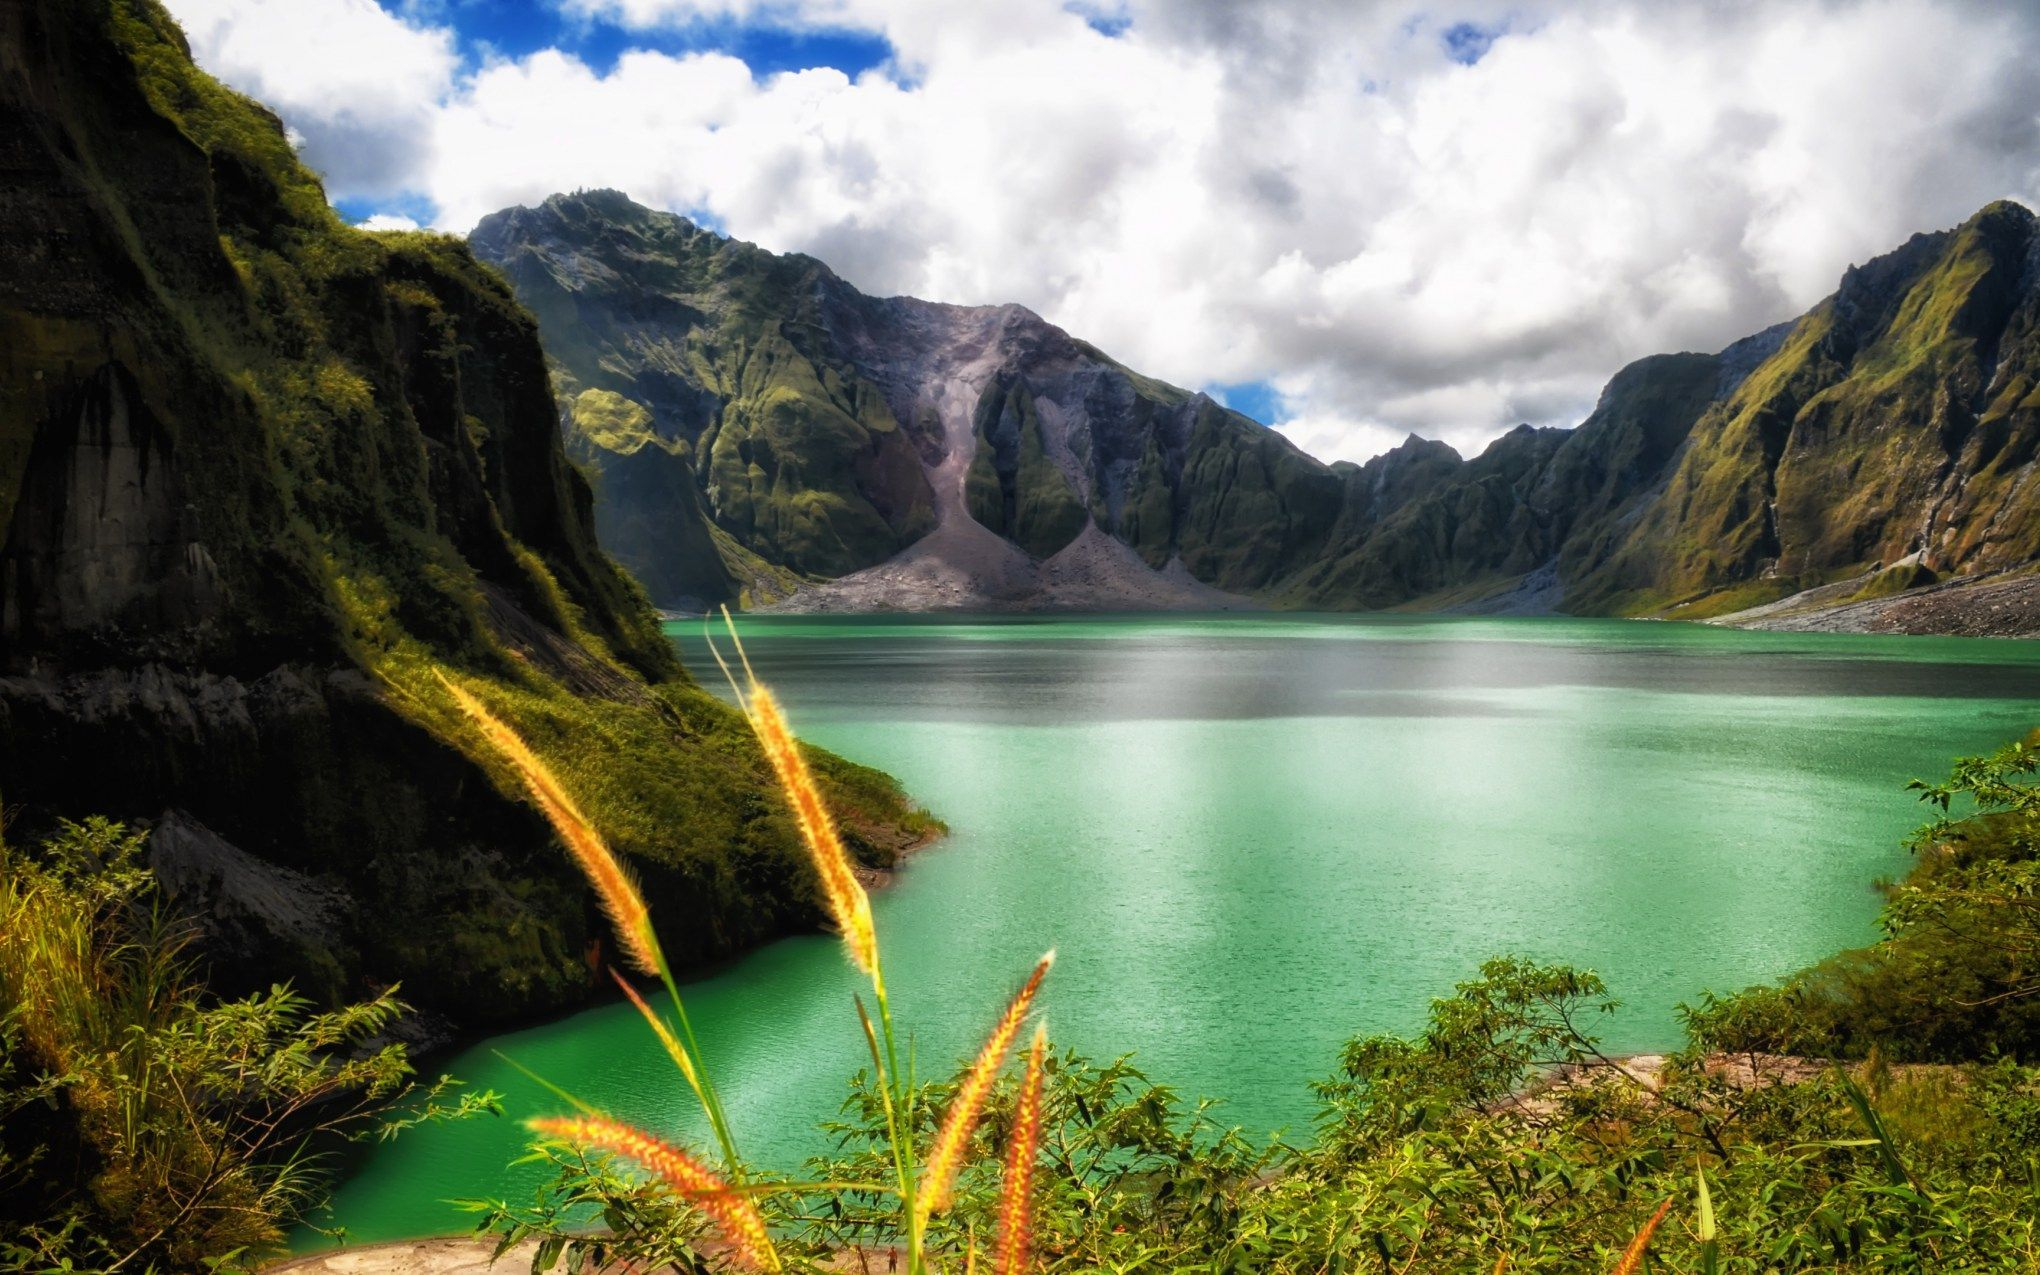 High Resolution Scenic Wallpapers - Top Free High ...